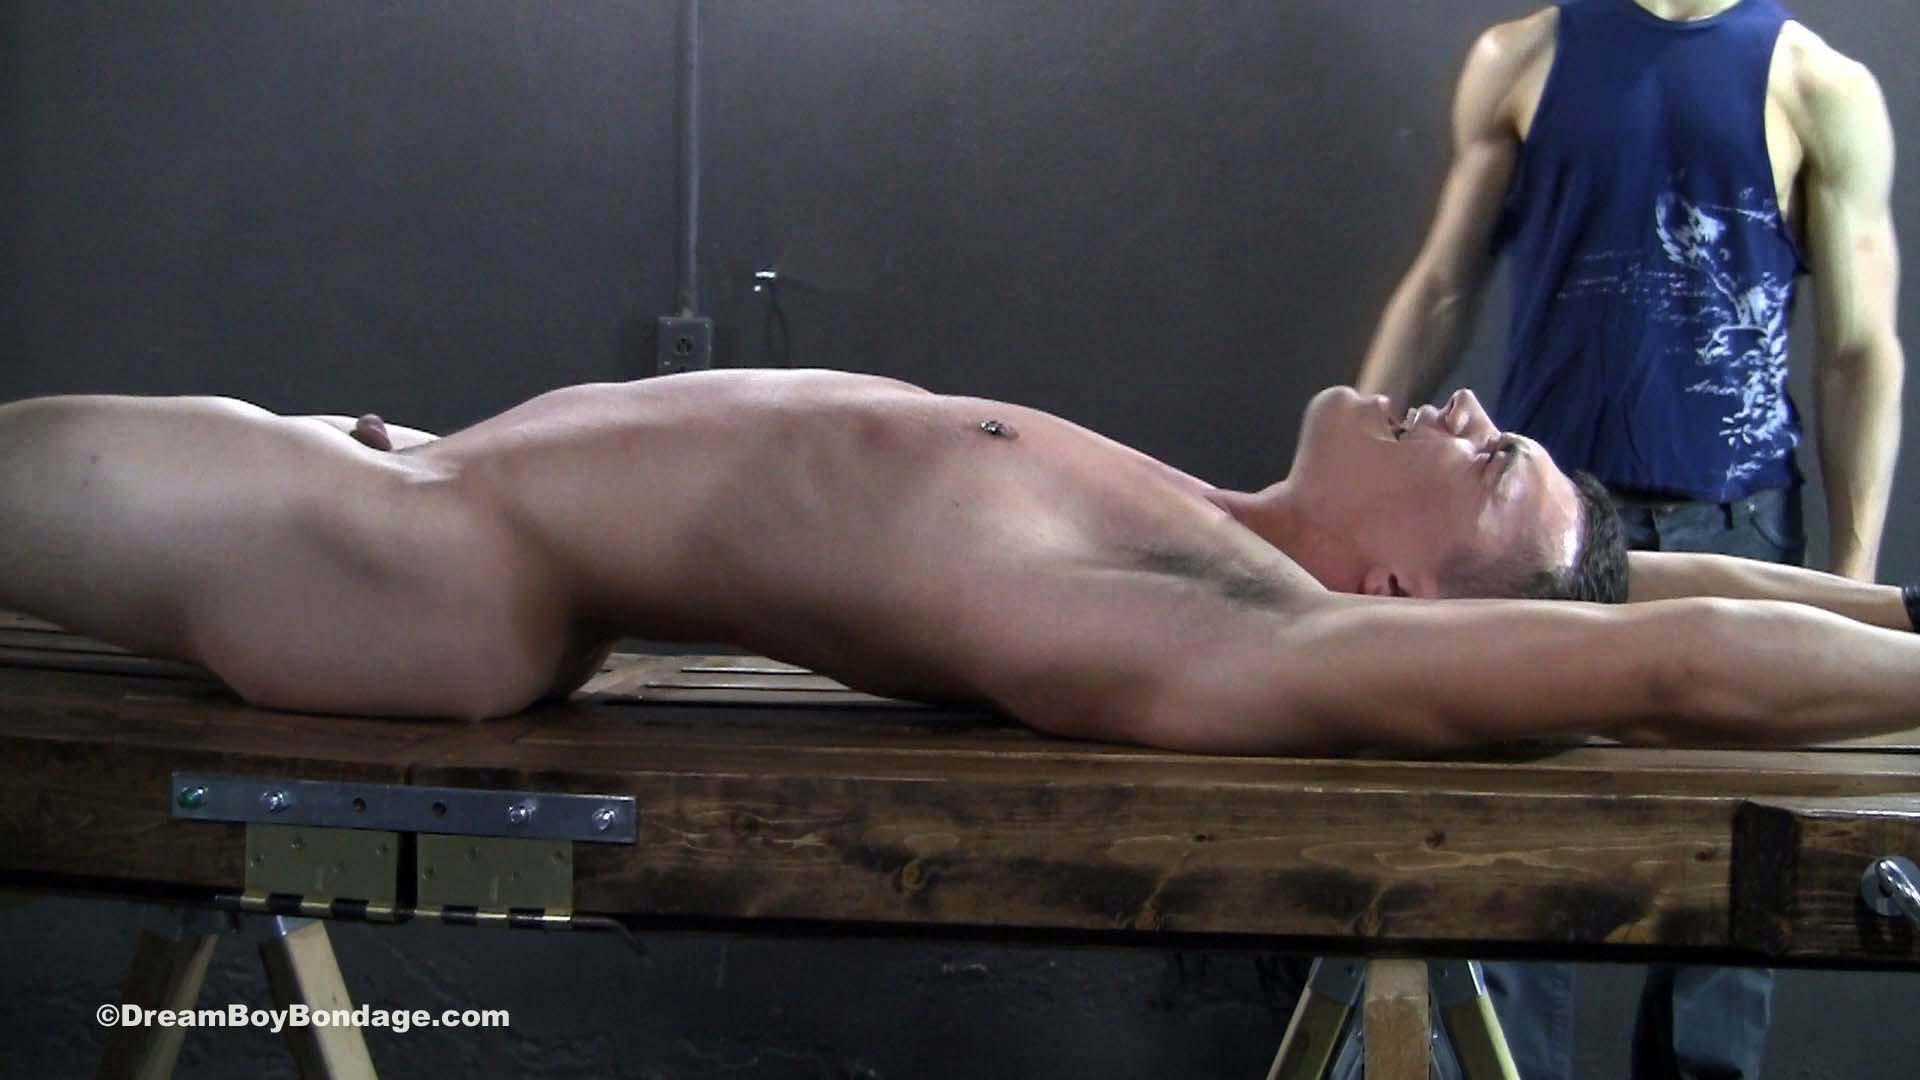 Free Dream Boy Bondage